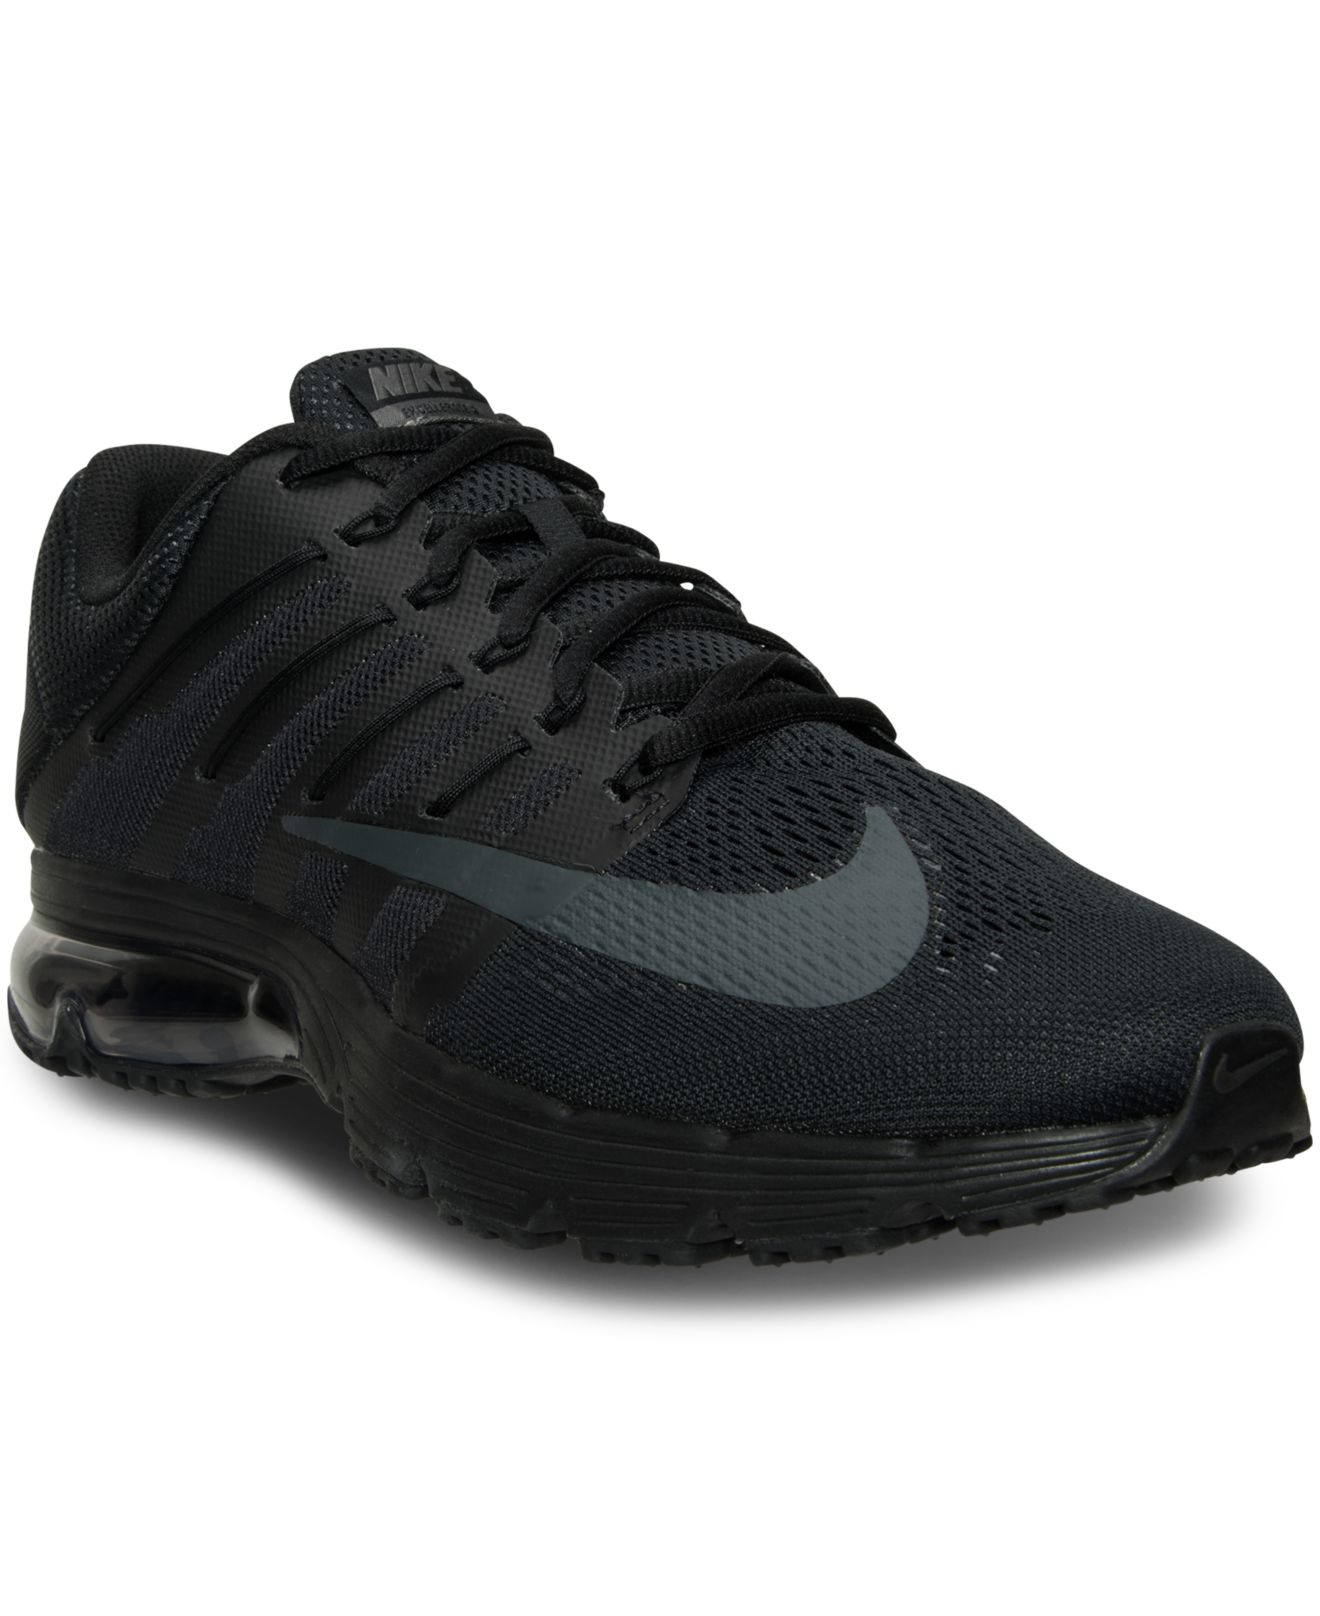 finest selection 74a74 de42f ... Finish Line Athletic Shoes Lyst - Nike Mens Air Max Excellerate 4  Running Sneakers From ...